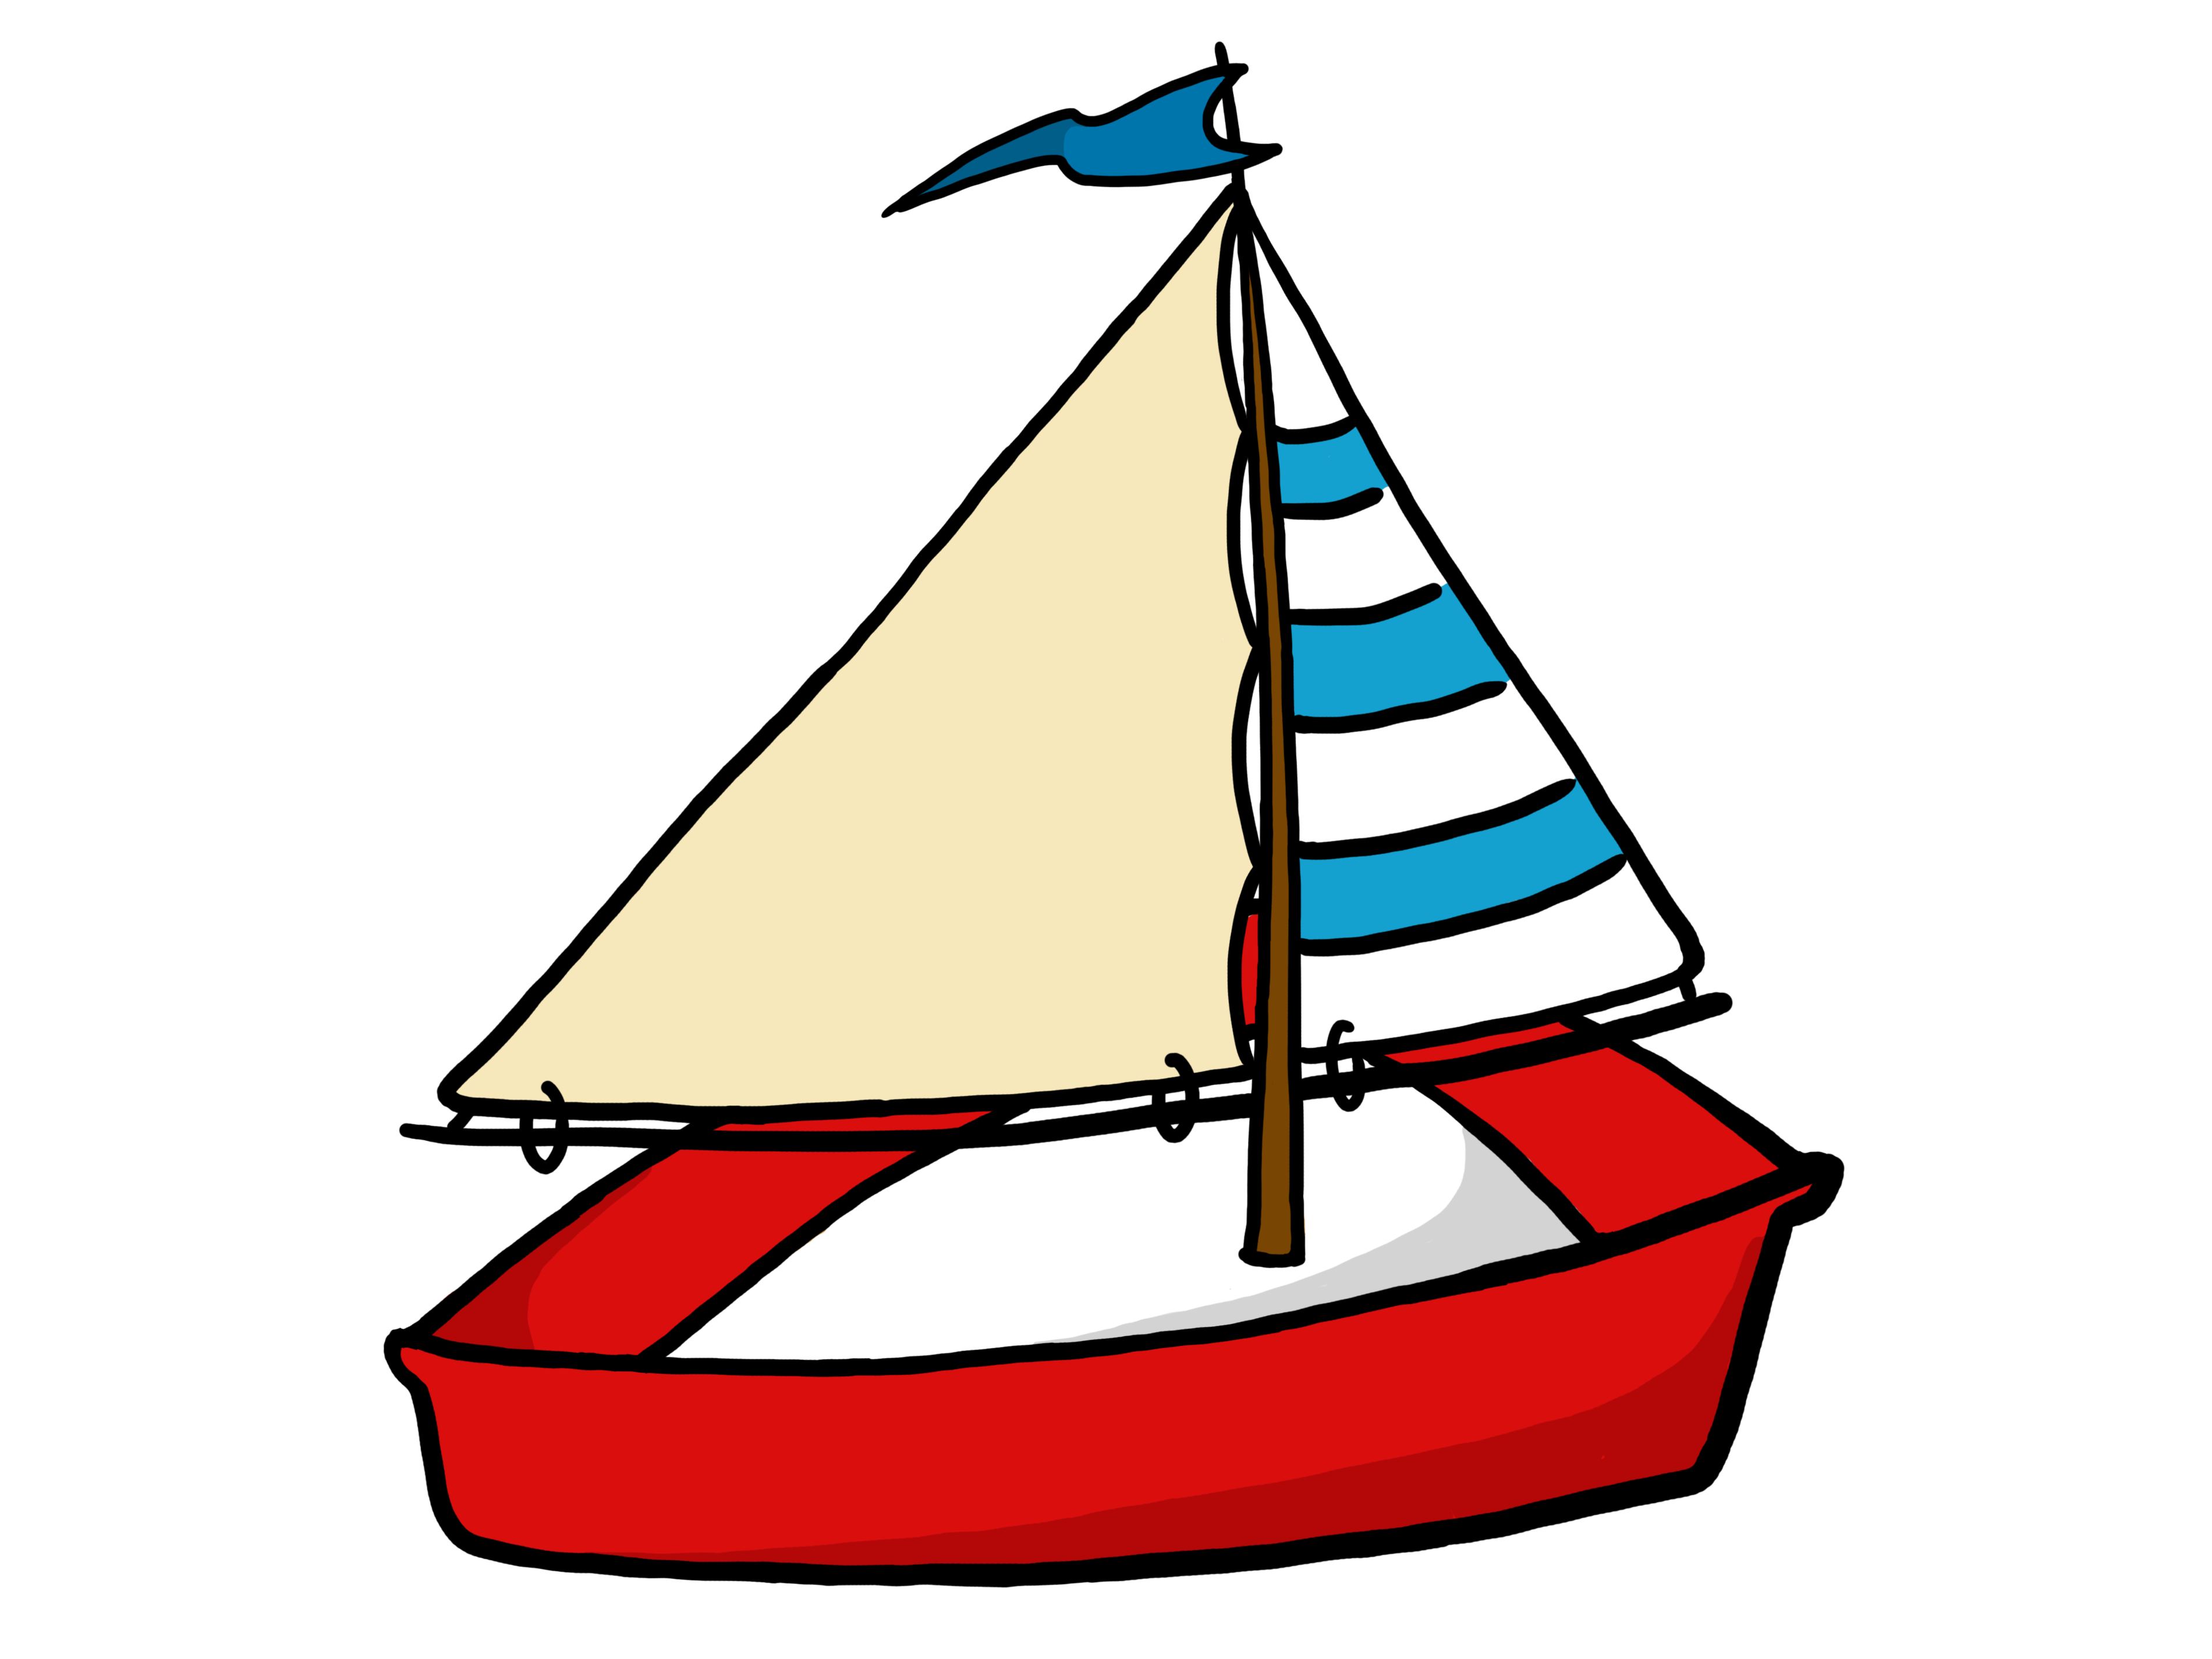 Ship clipart #3, Download drawings